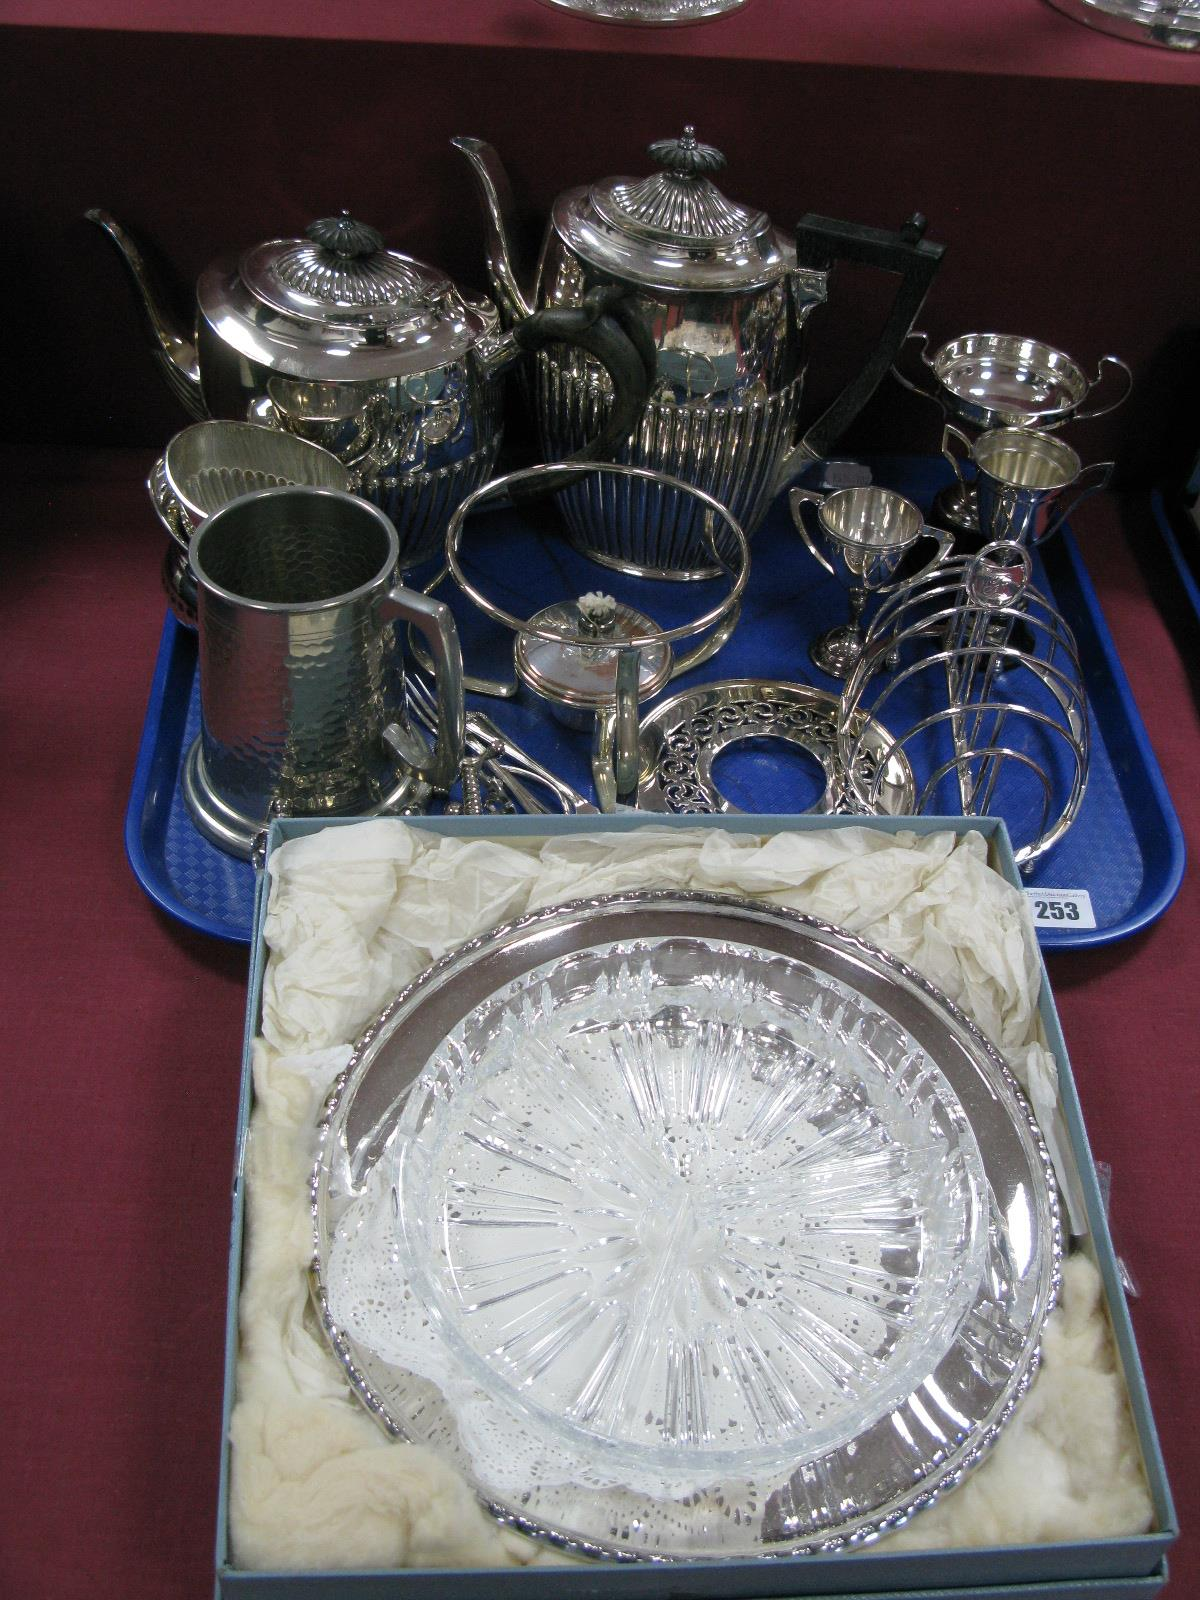 Lot 253 - Plated Trophy Cups, tea ware, hors d'oeuvre's dish, burner stand, two pairs of knife rests, etc:-